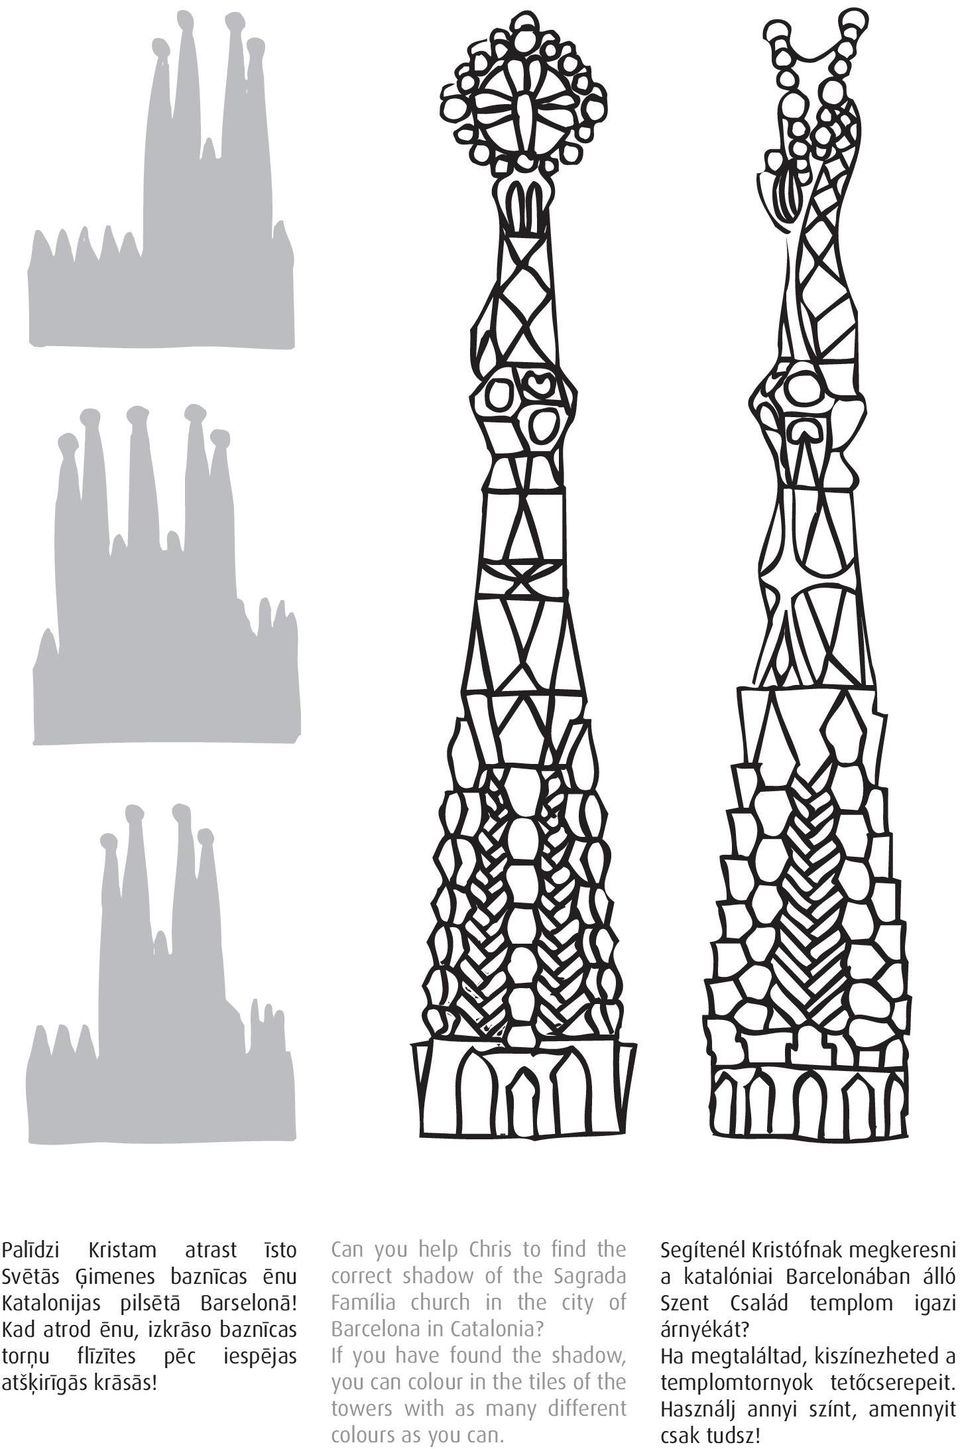 Can you help Chris to find the correct shadow of the Sagrada Família church in the city of Barcelona in Catalonia?